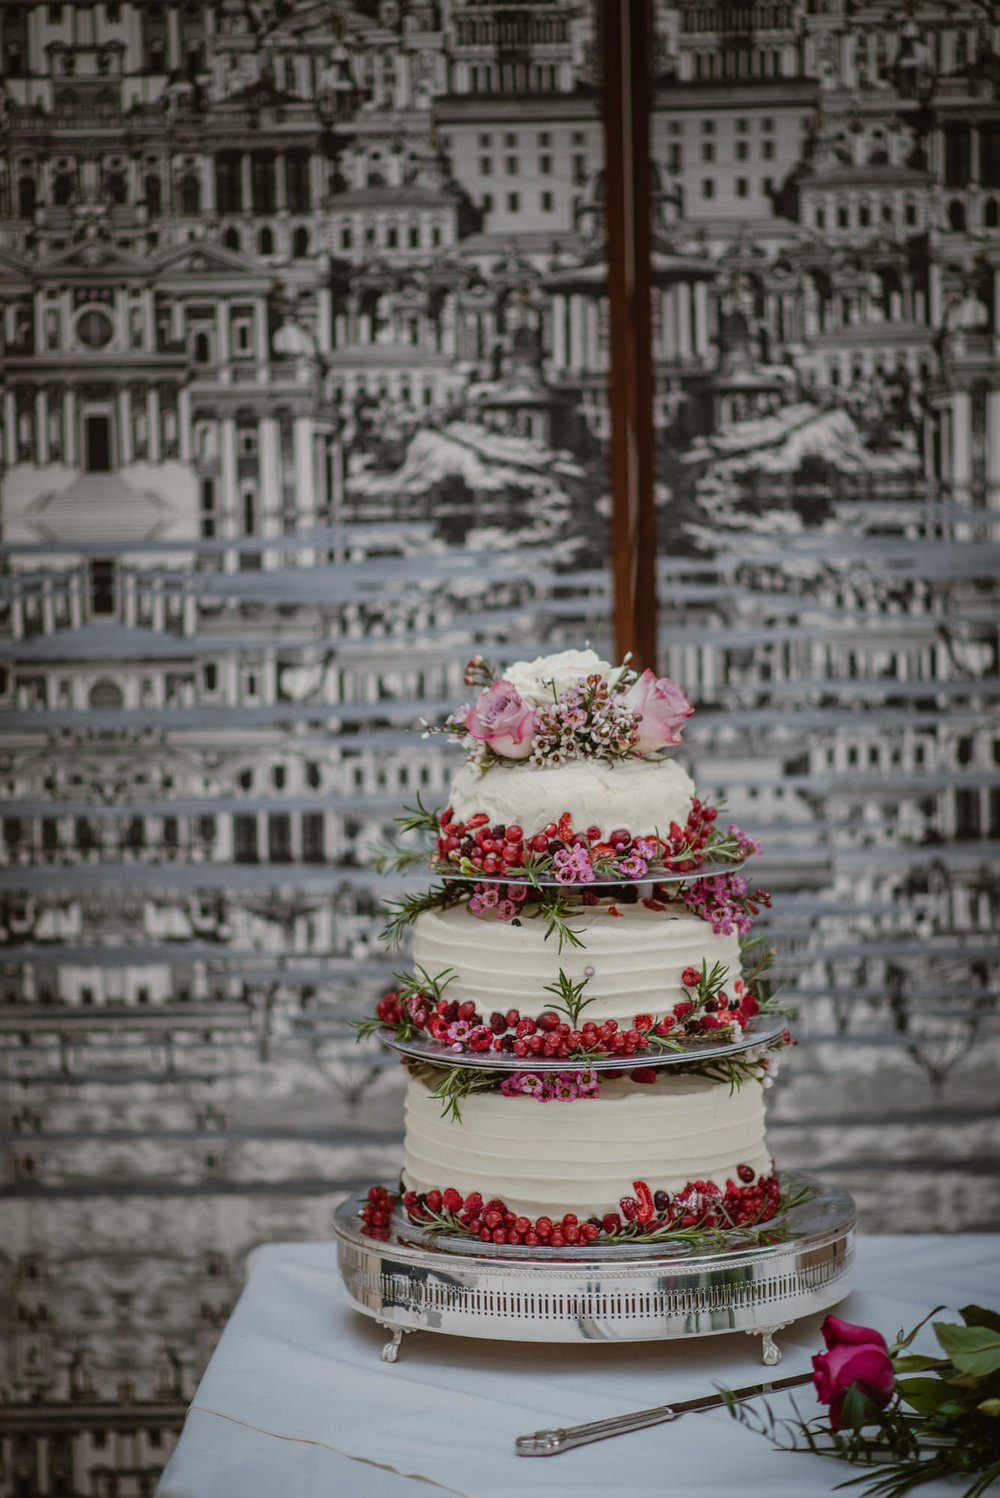 Blenheim palace Wedding Cake